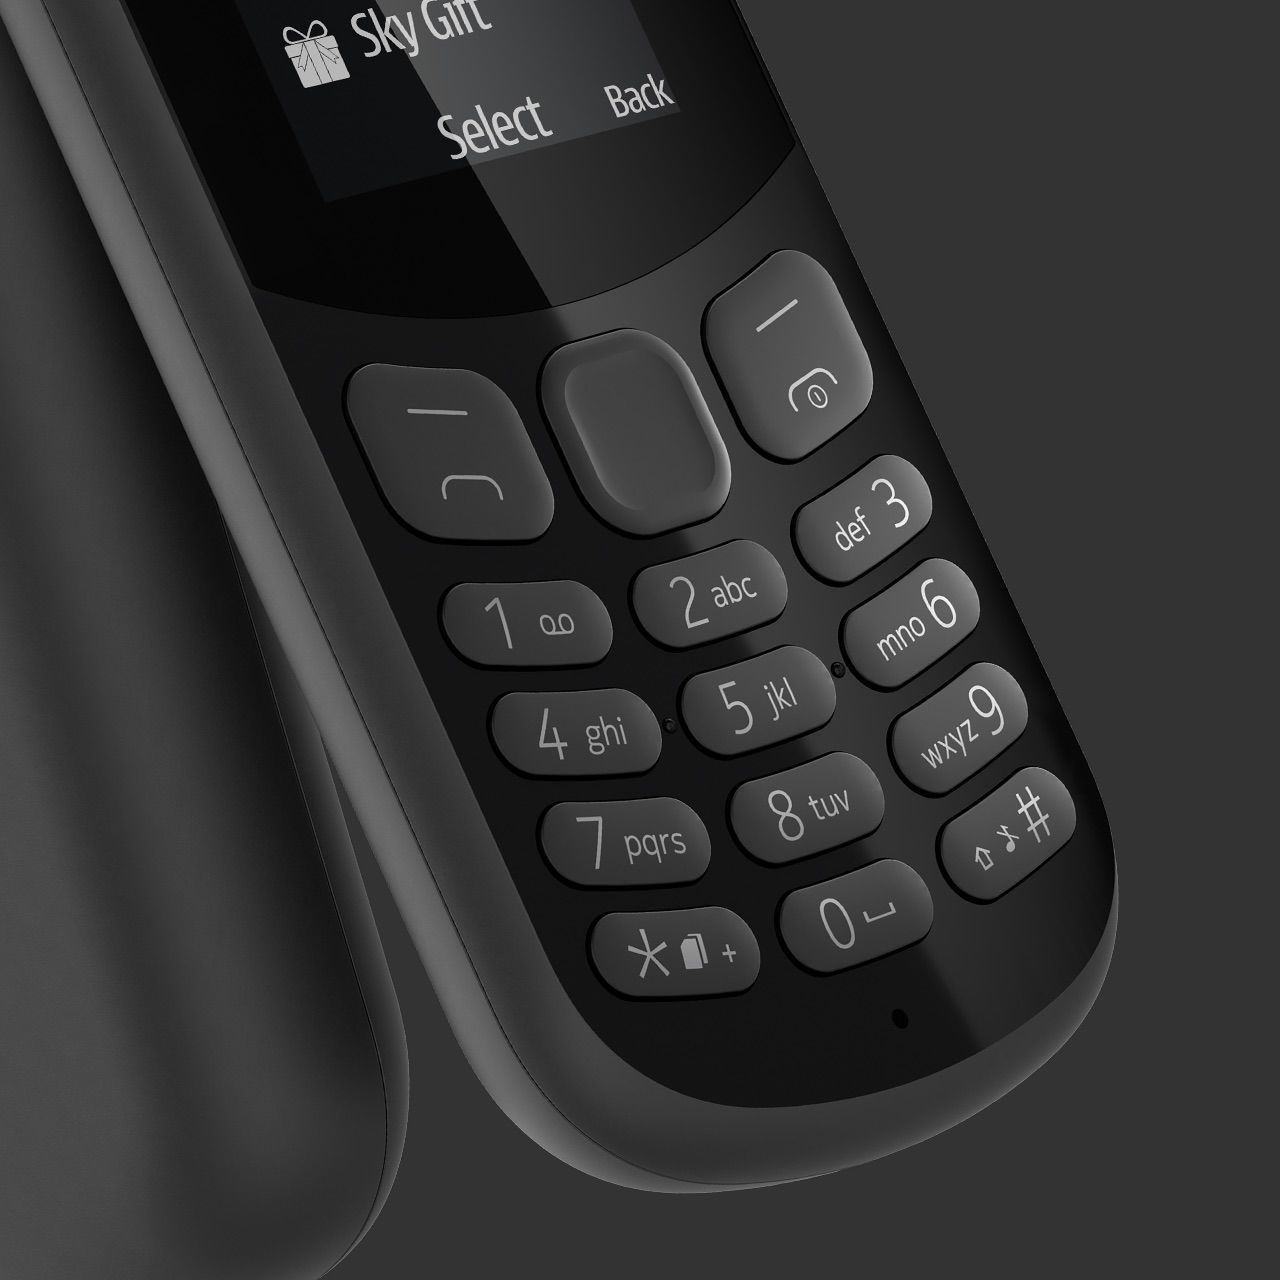 nokia_130-design_black-1280x1280.jpg